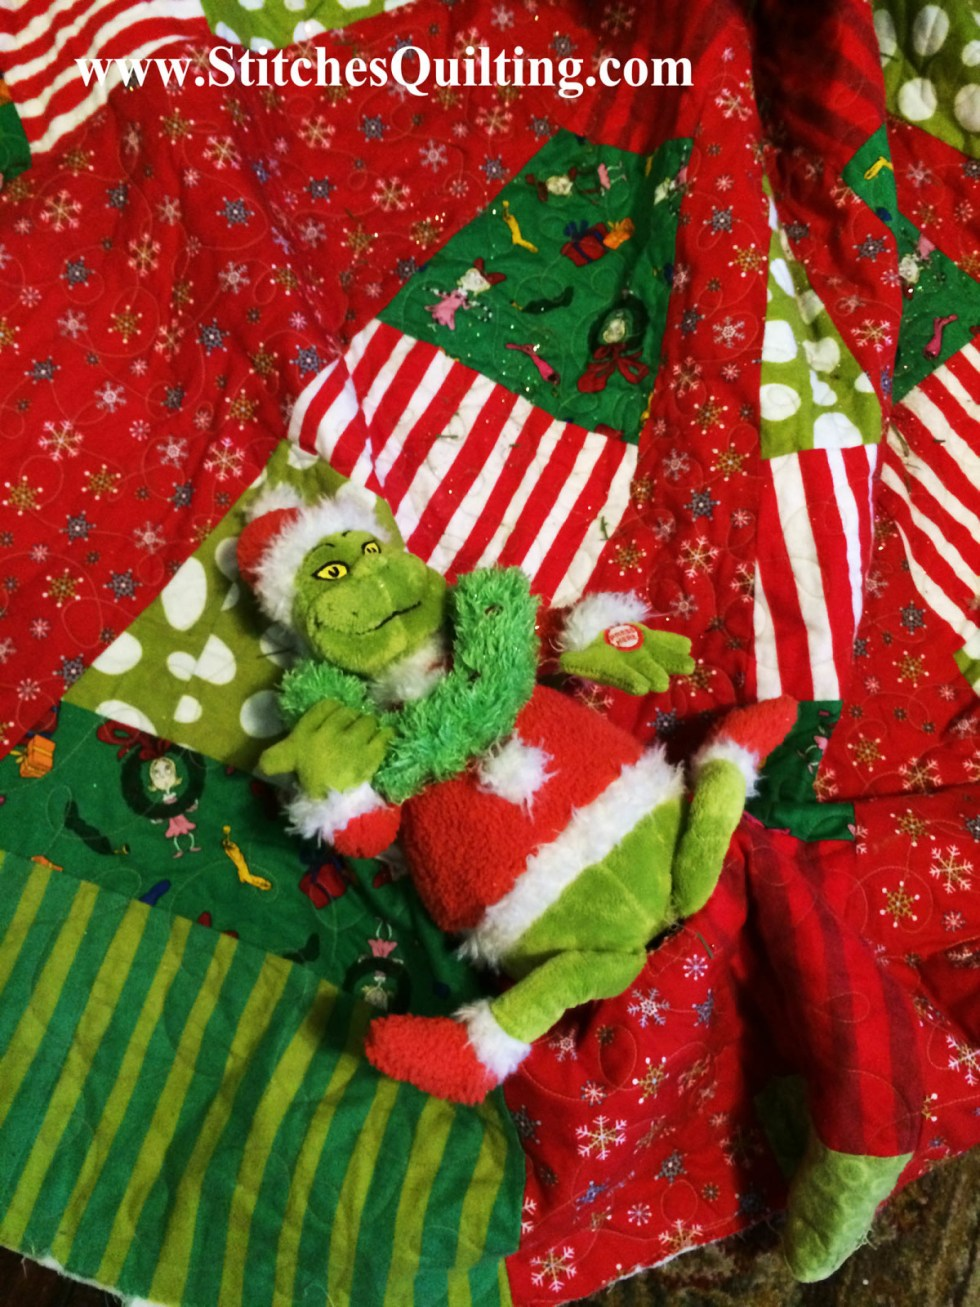 Our Quilted Grinch Tree Skirt that I longarmed Grinch stuff creatures to it! Tutorial coming later this week.